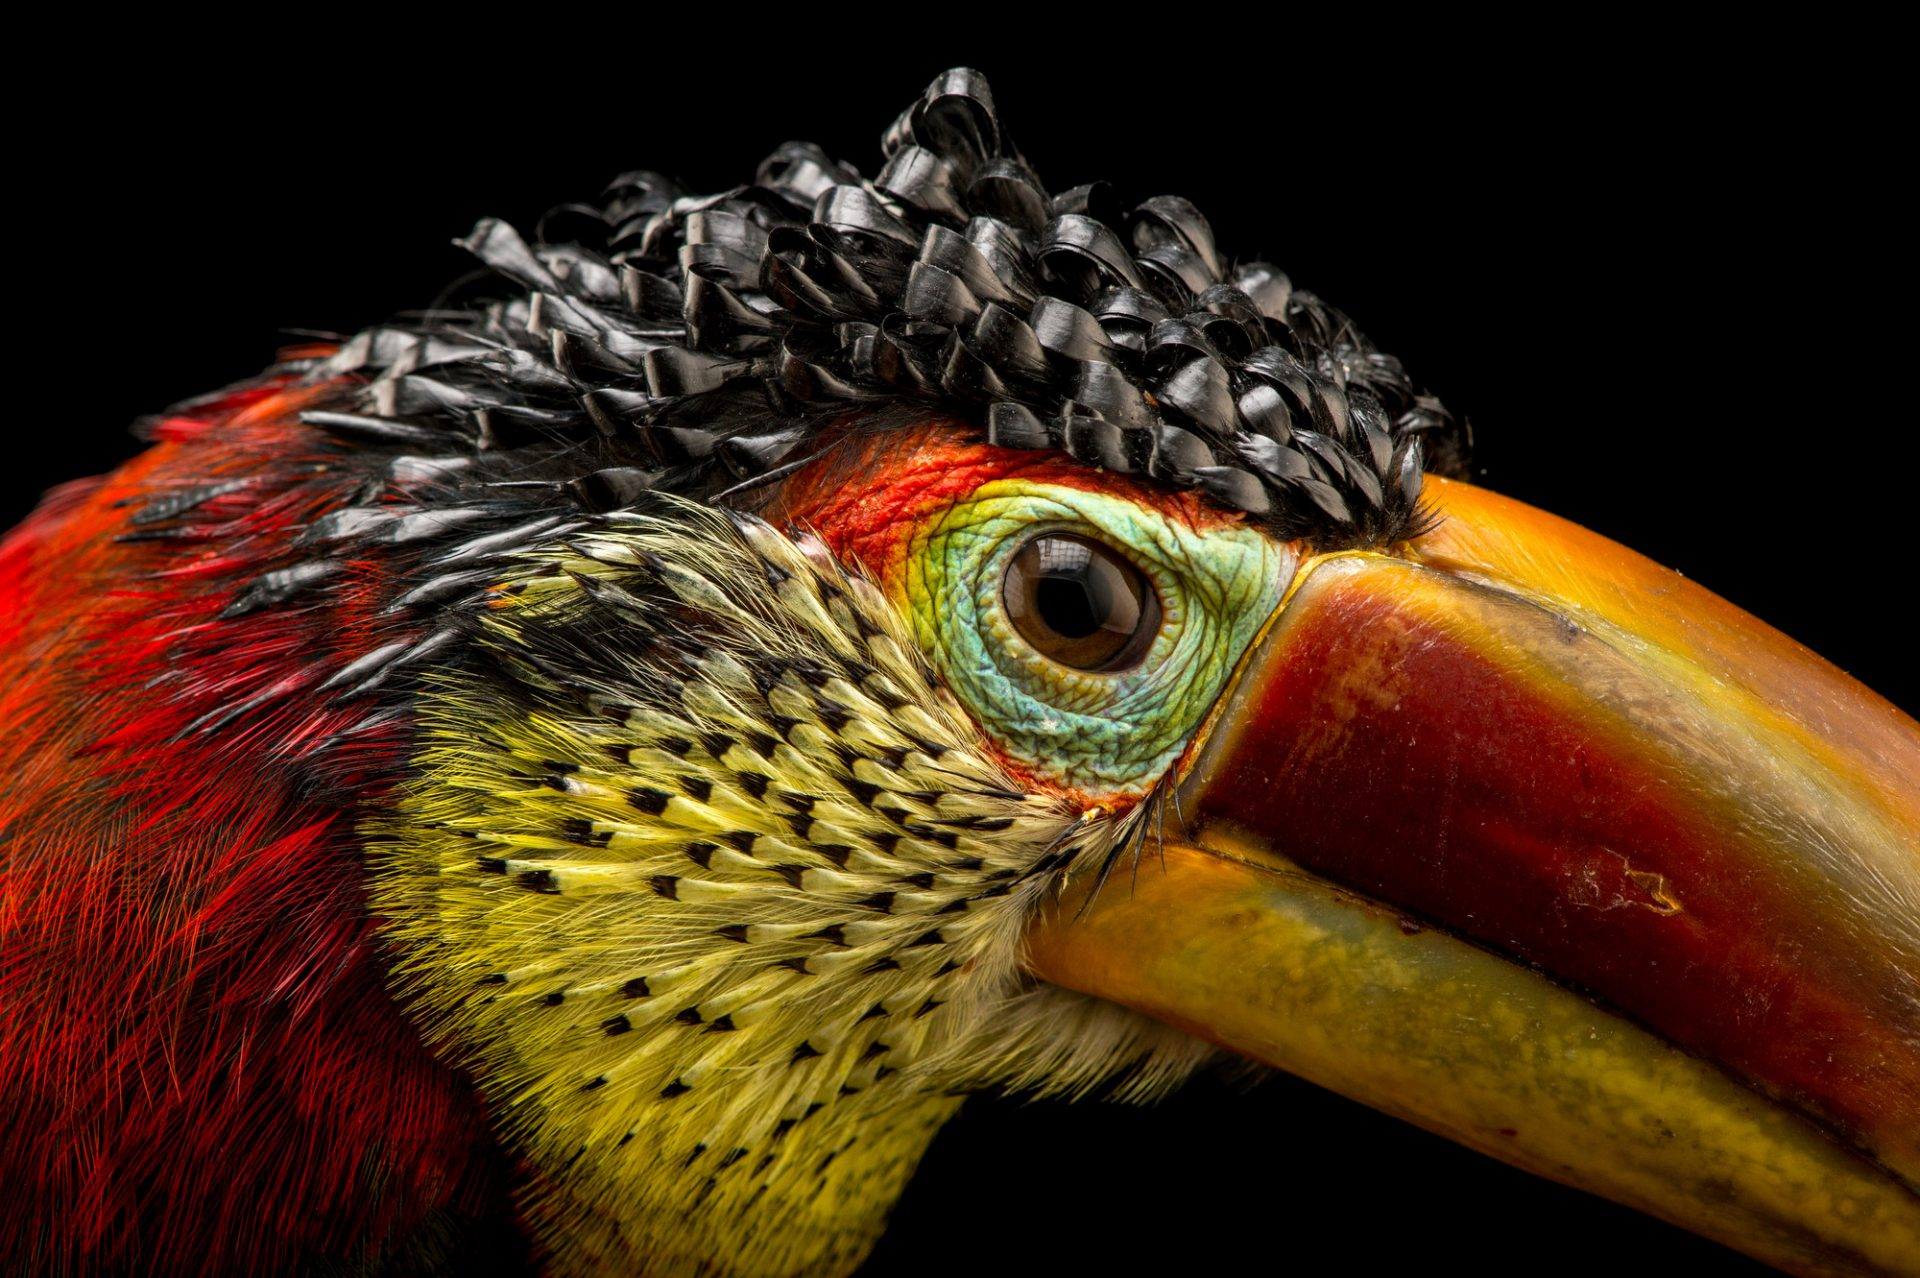 BIR050 00085   Joel Sartore Picture of a curl crested aracari  Pteroglossus beauharnaesii  at the  Dallas World Aquarium